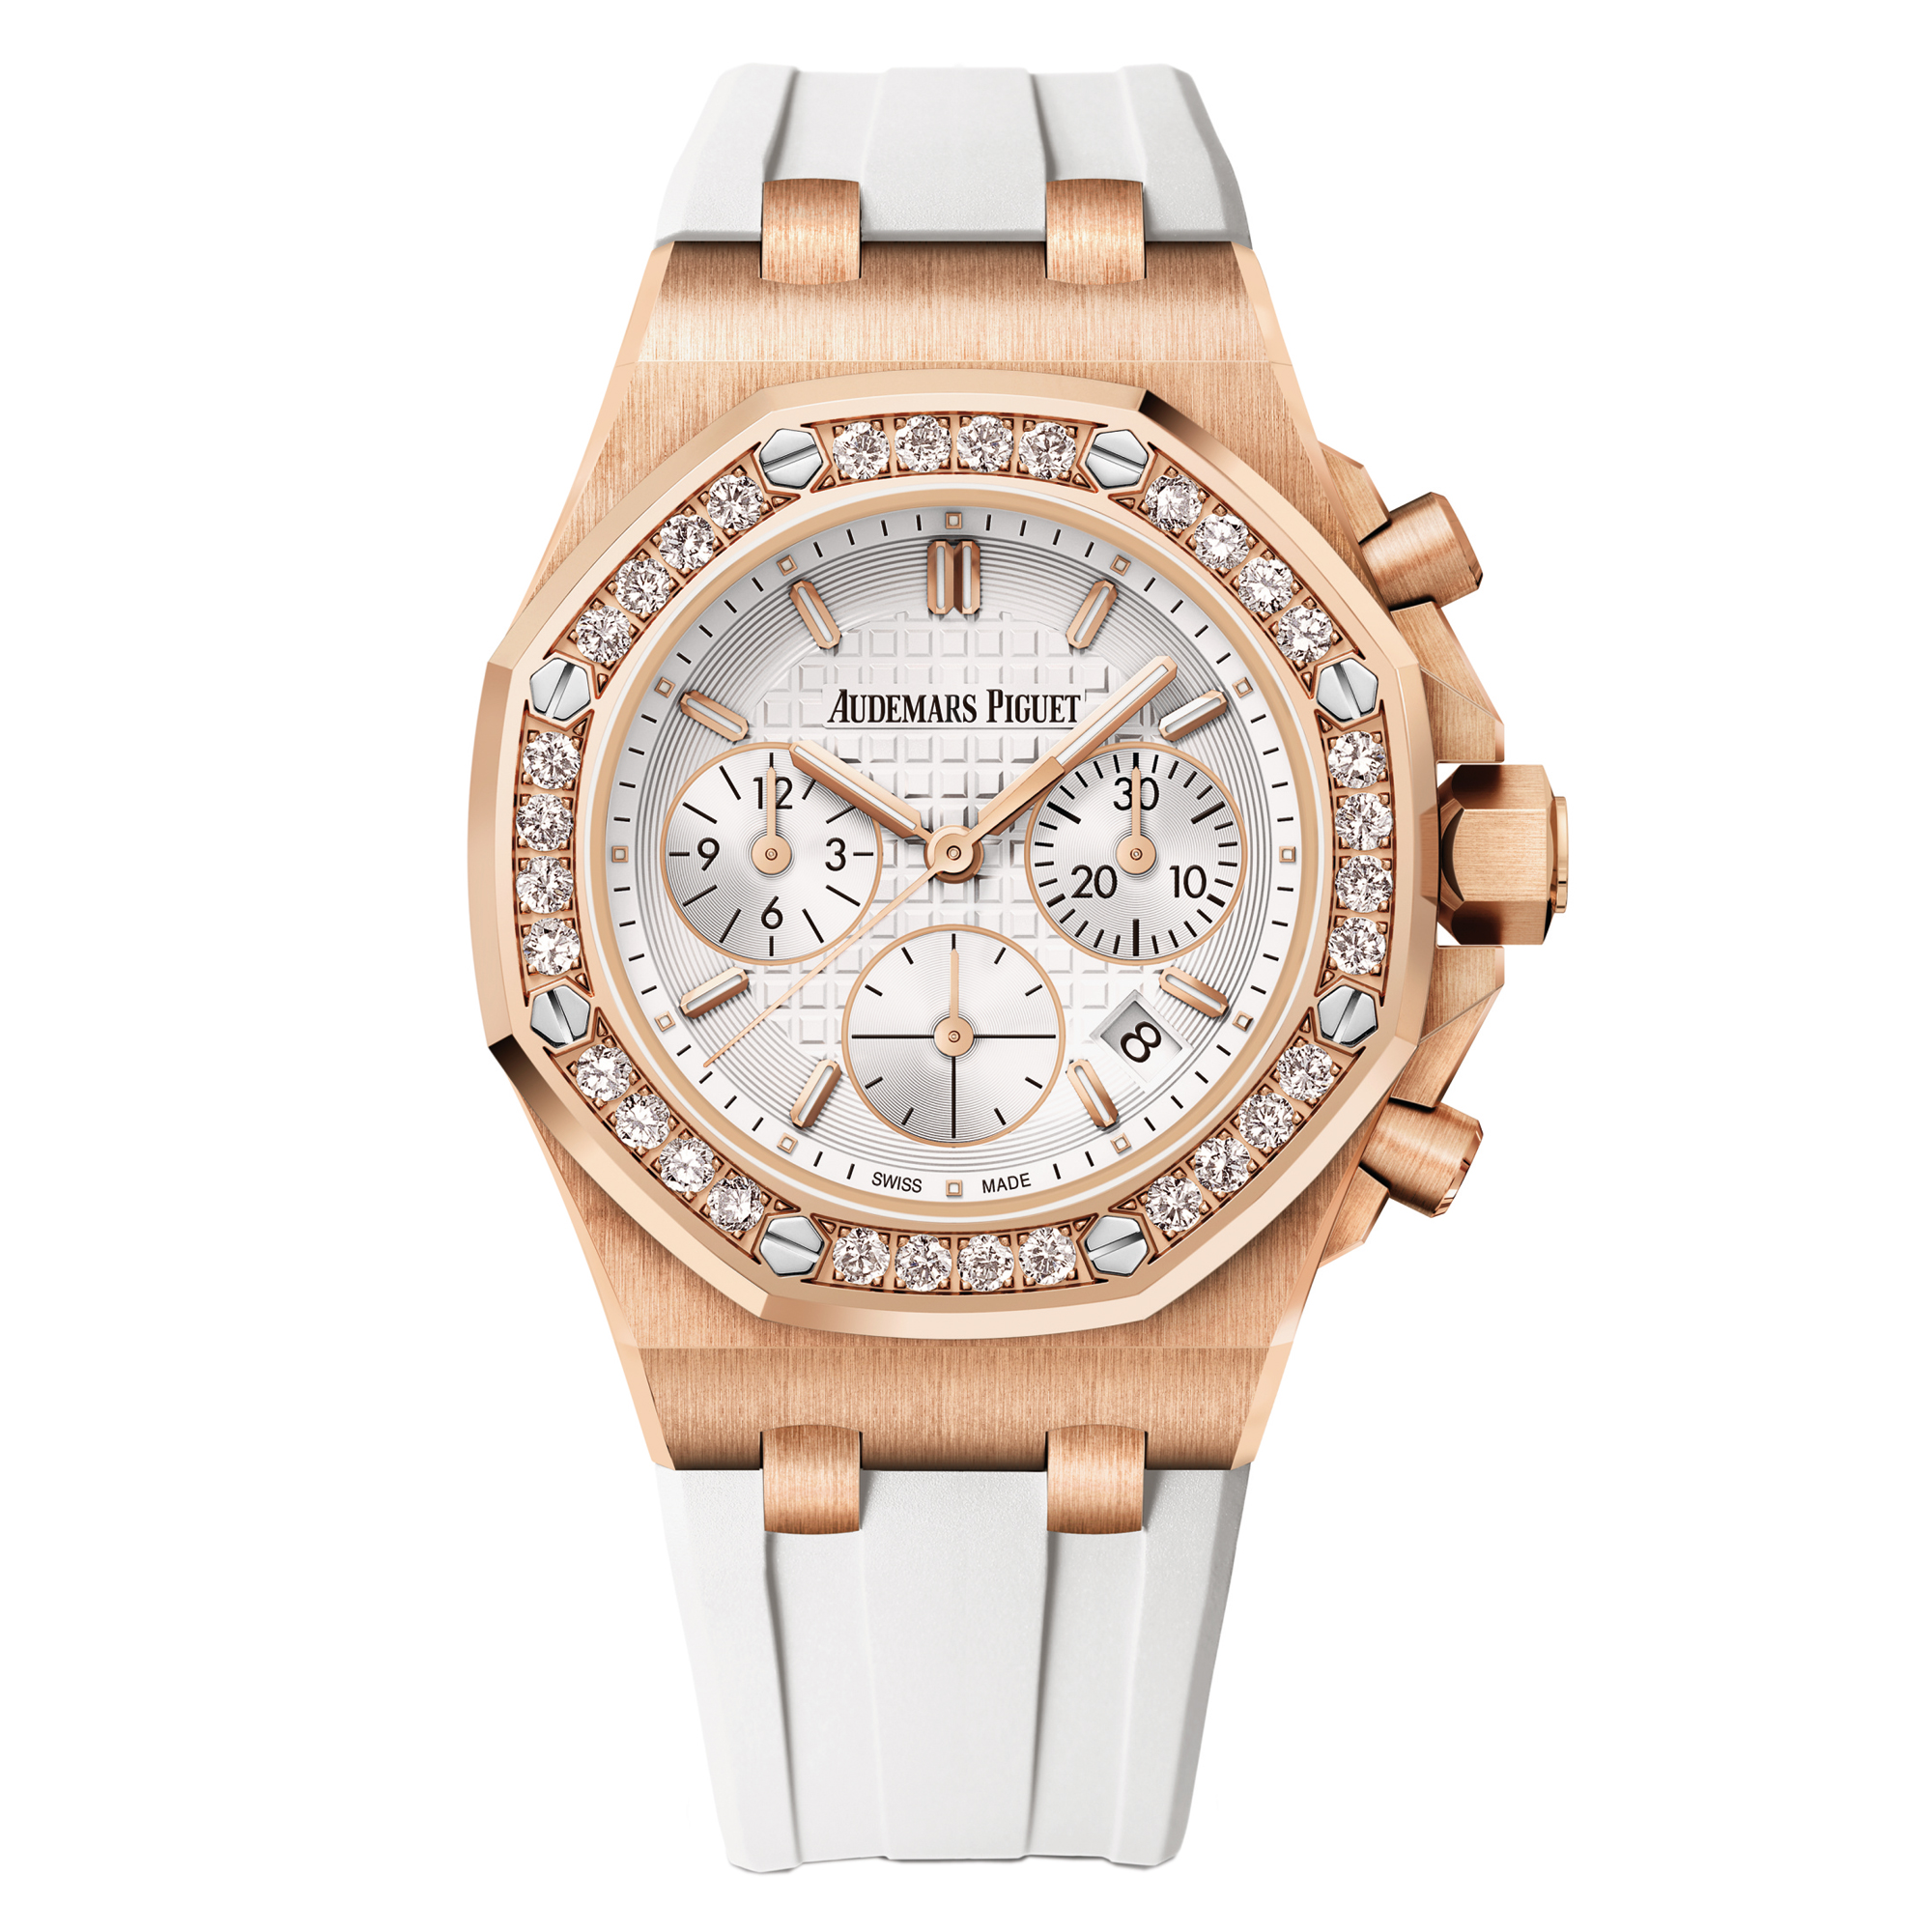 Audemars Piguet Diamond Royal Oak Offshore Chronograph